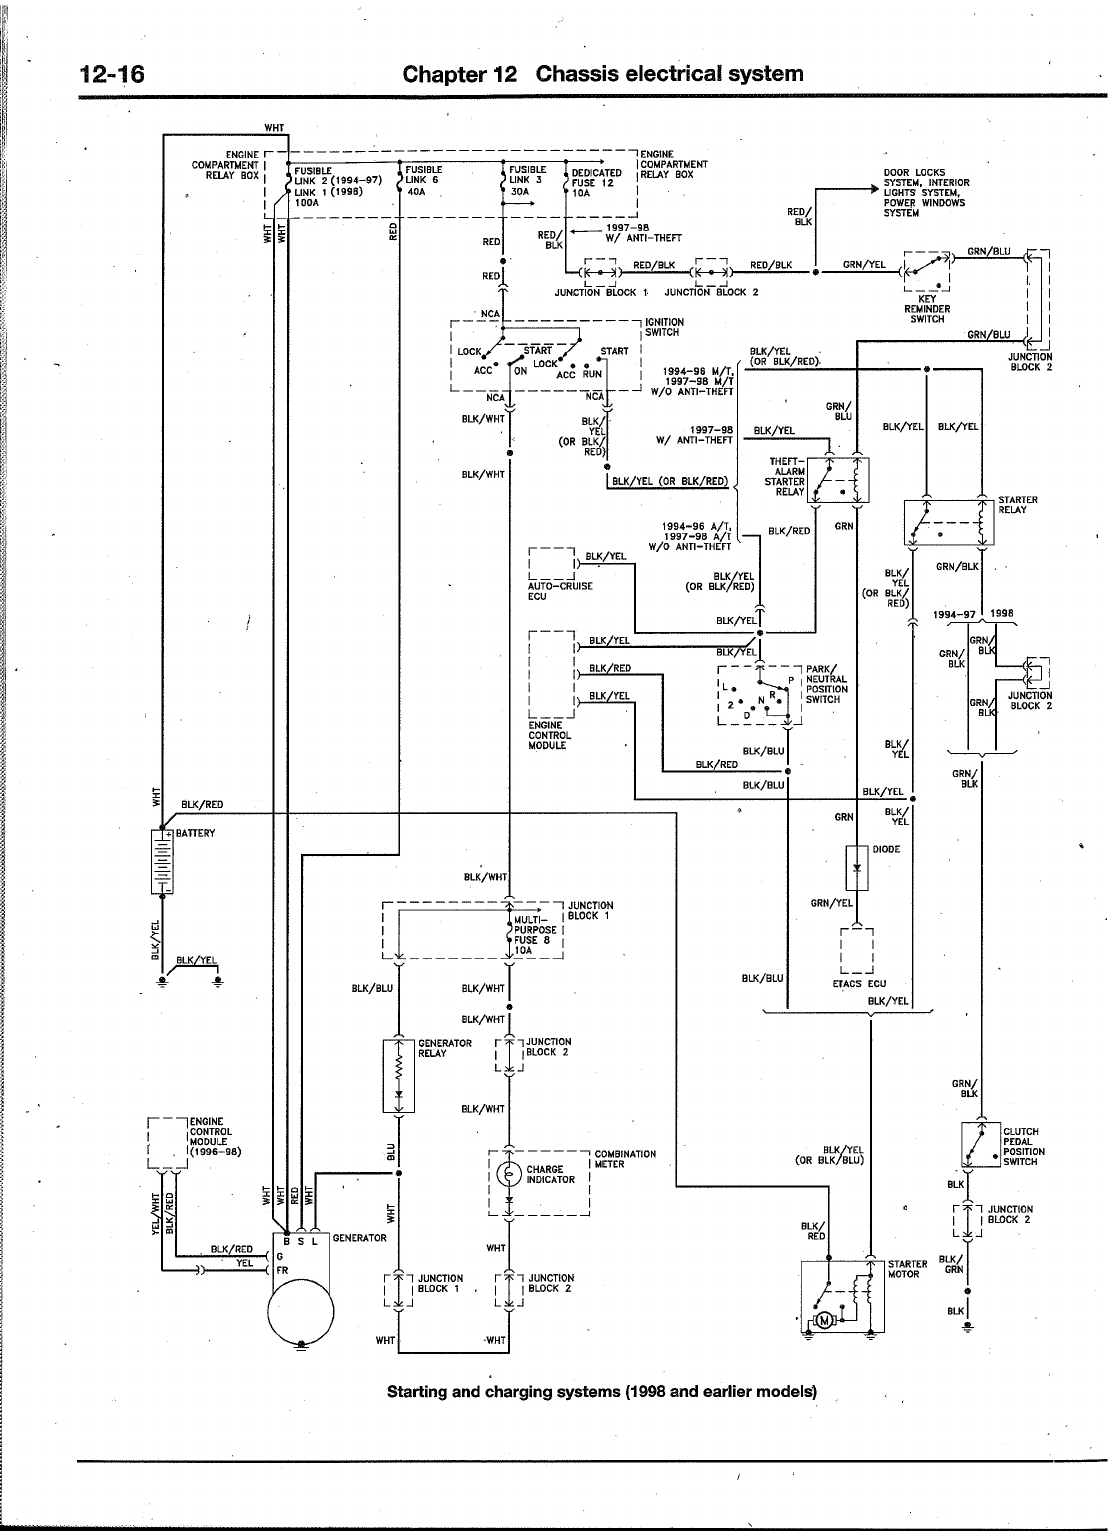 1993 mitsubishi diamante fuse box diagram great installation of mitsubishi diamante wiring diagram 98 pics wiring diagrams schema rh 49 verena hoegerl de 98 camry fuse box diagram mitsubishi eclipse fuse box diagram